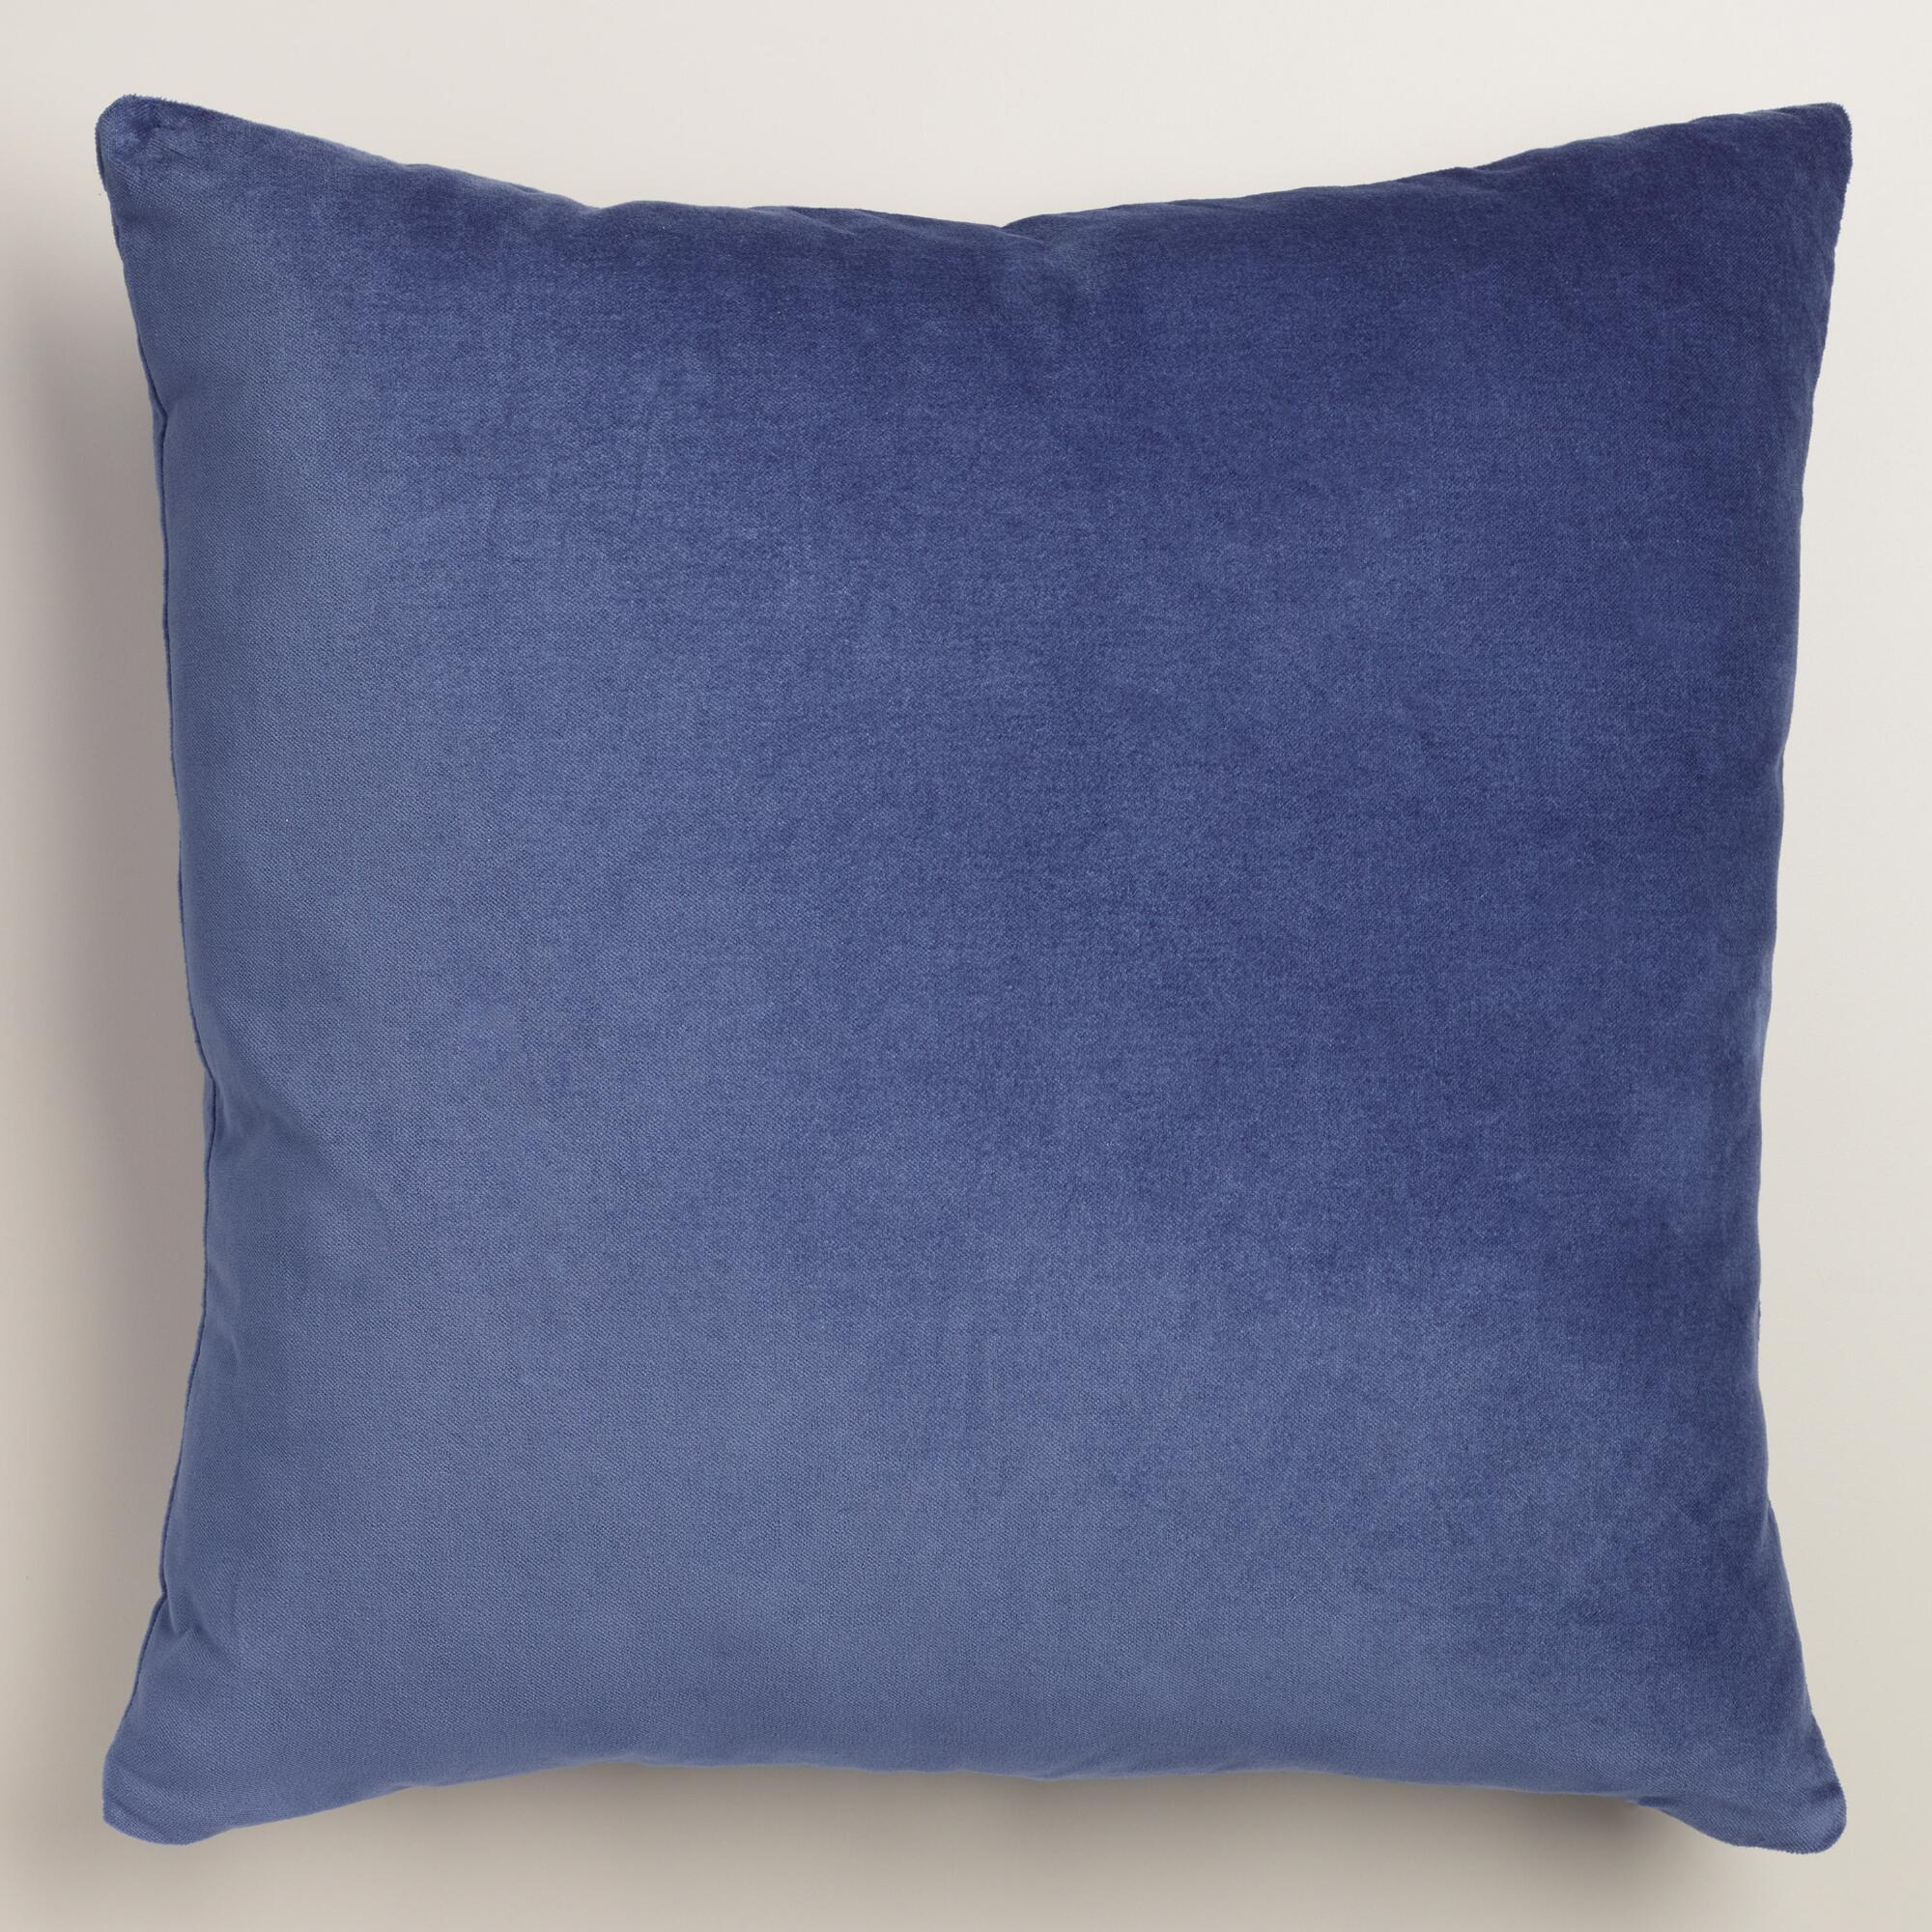 Throw Pillows Velvet : Twilight Blue Velvet Throw Pillow World Market